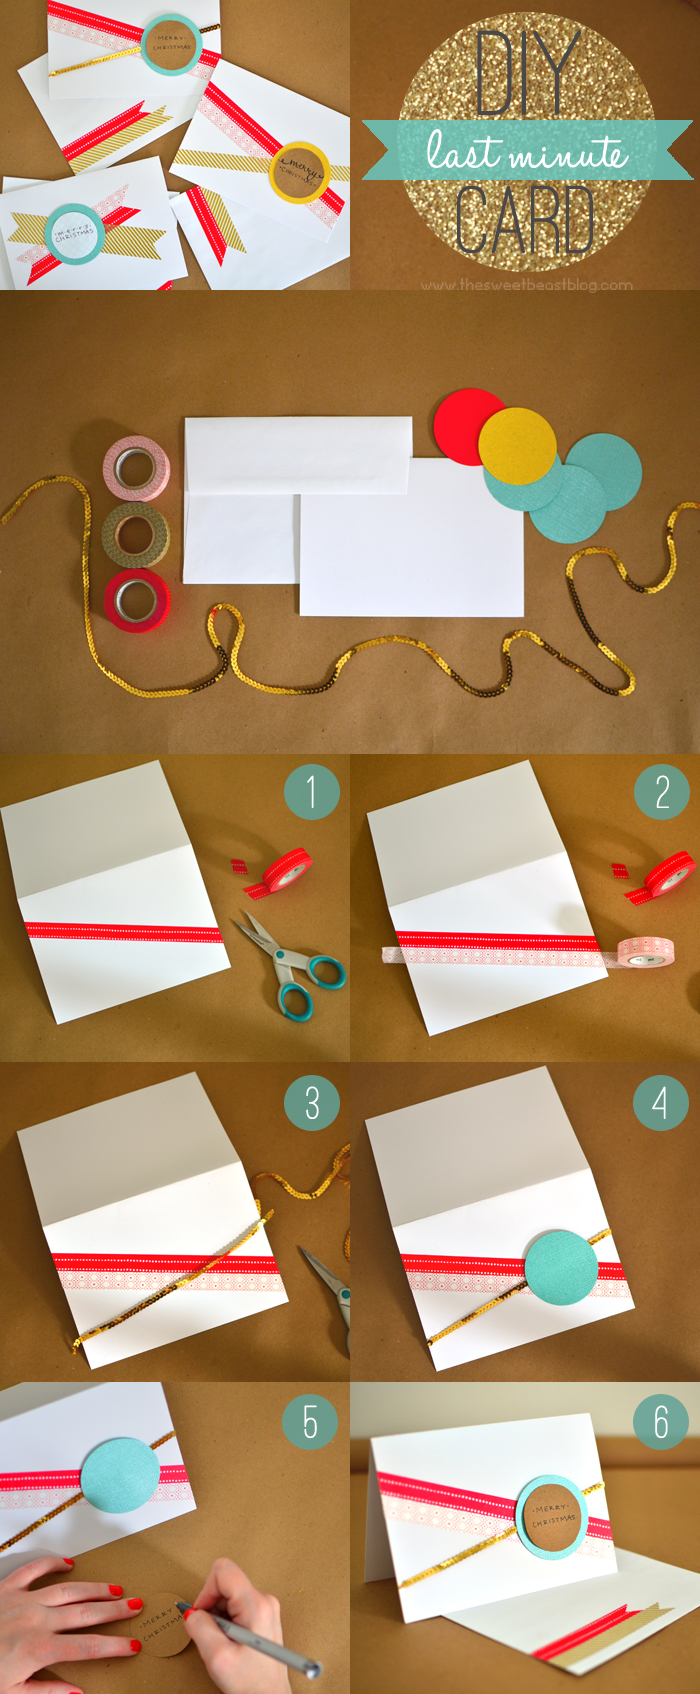 Diy Last Minute Greeting Cards The Sweet Beast